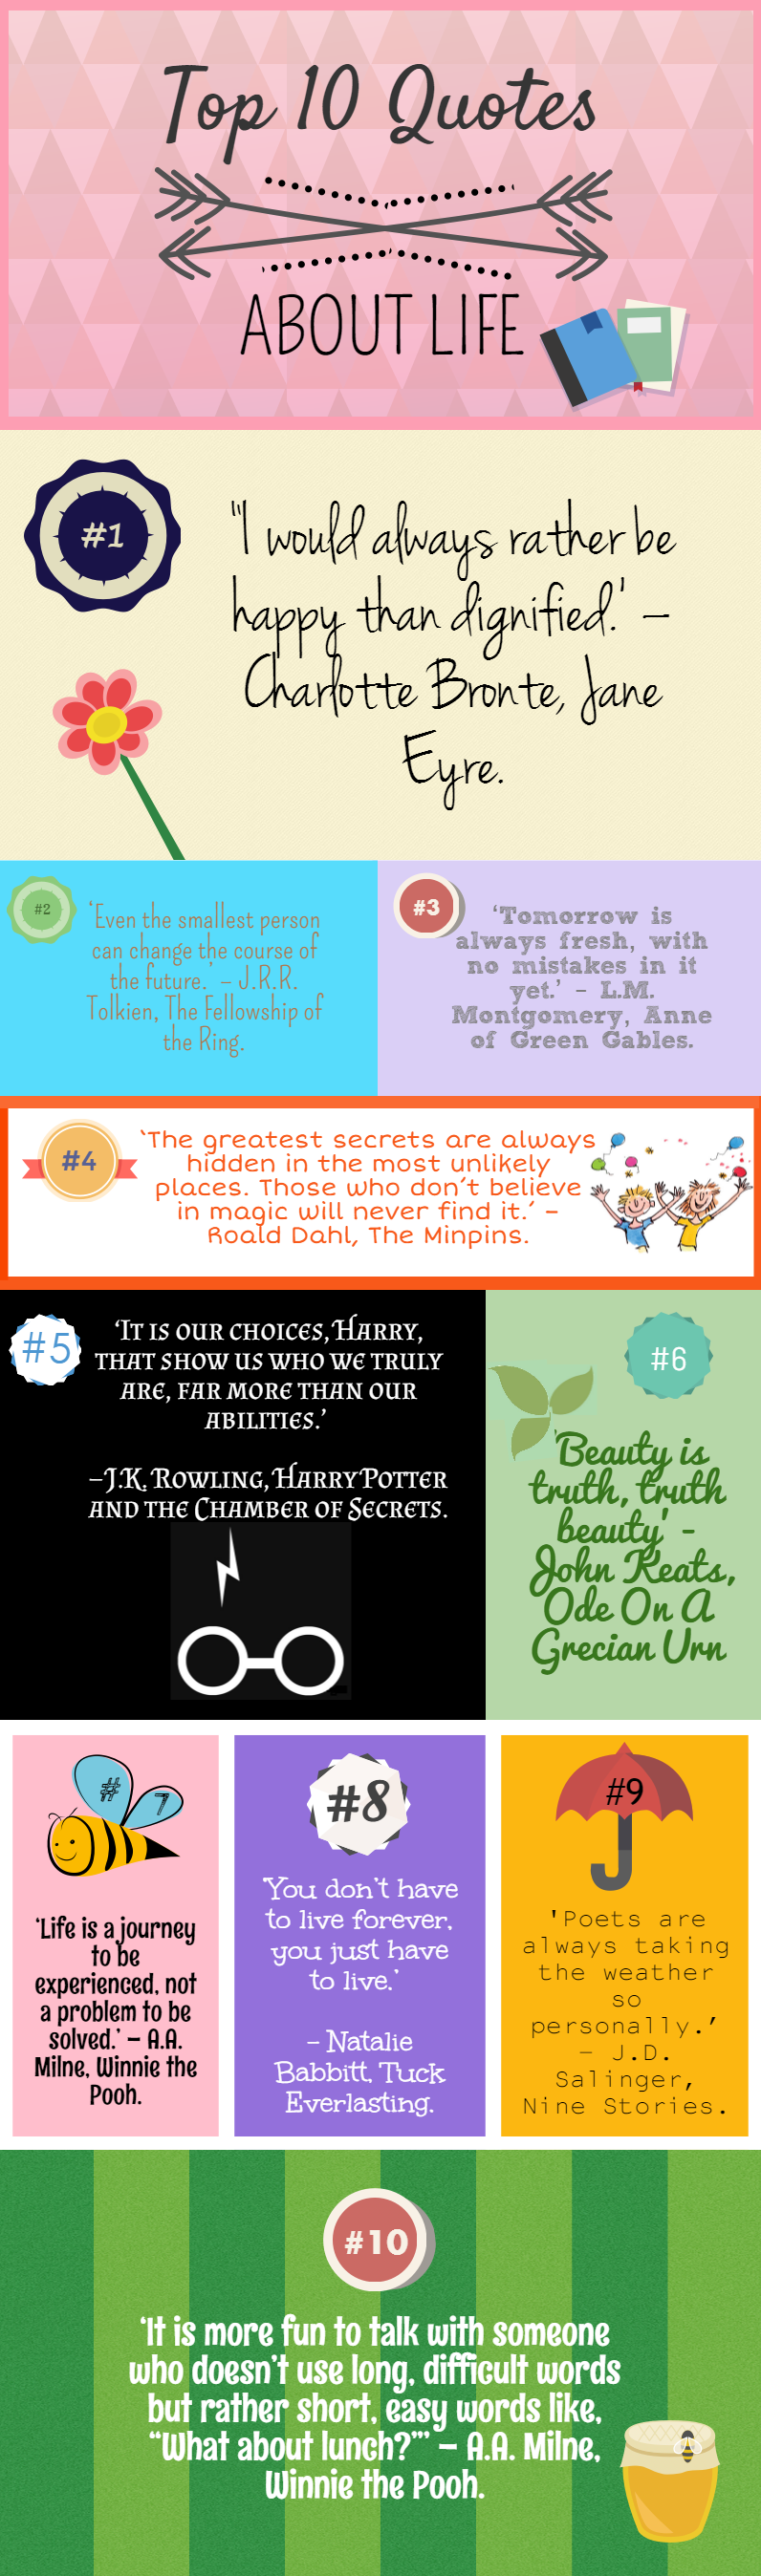 Top 10 Life Quotes Infographic